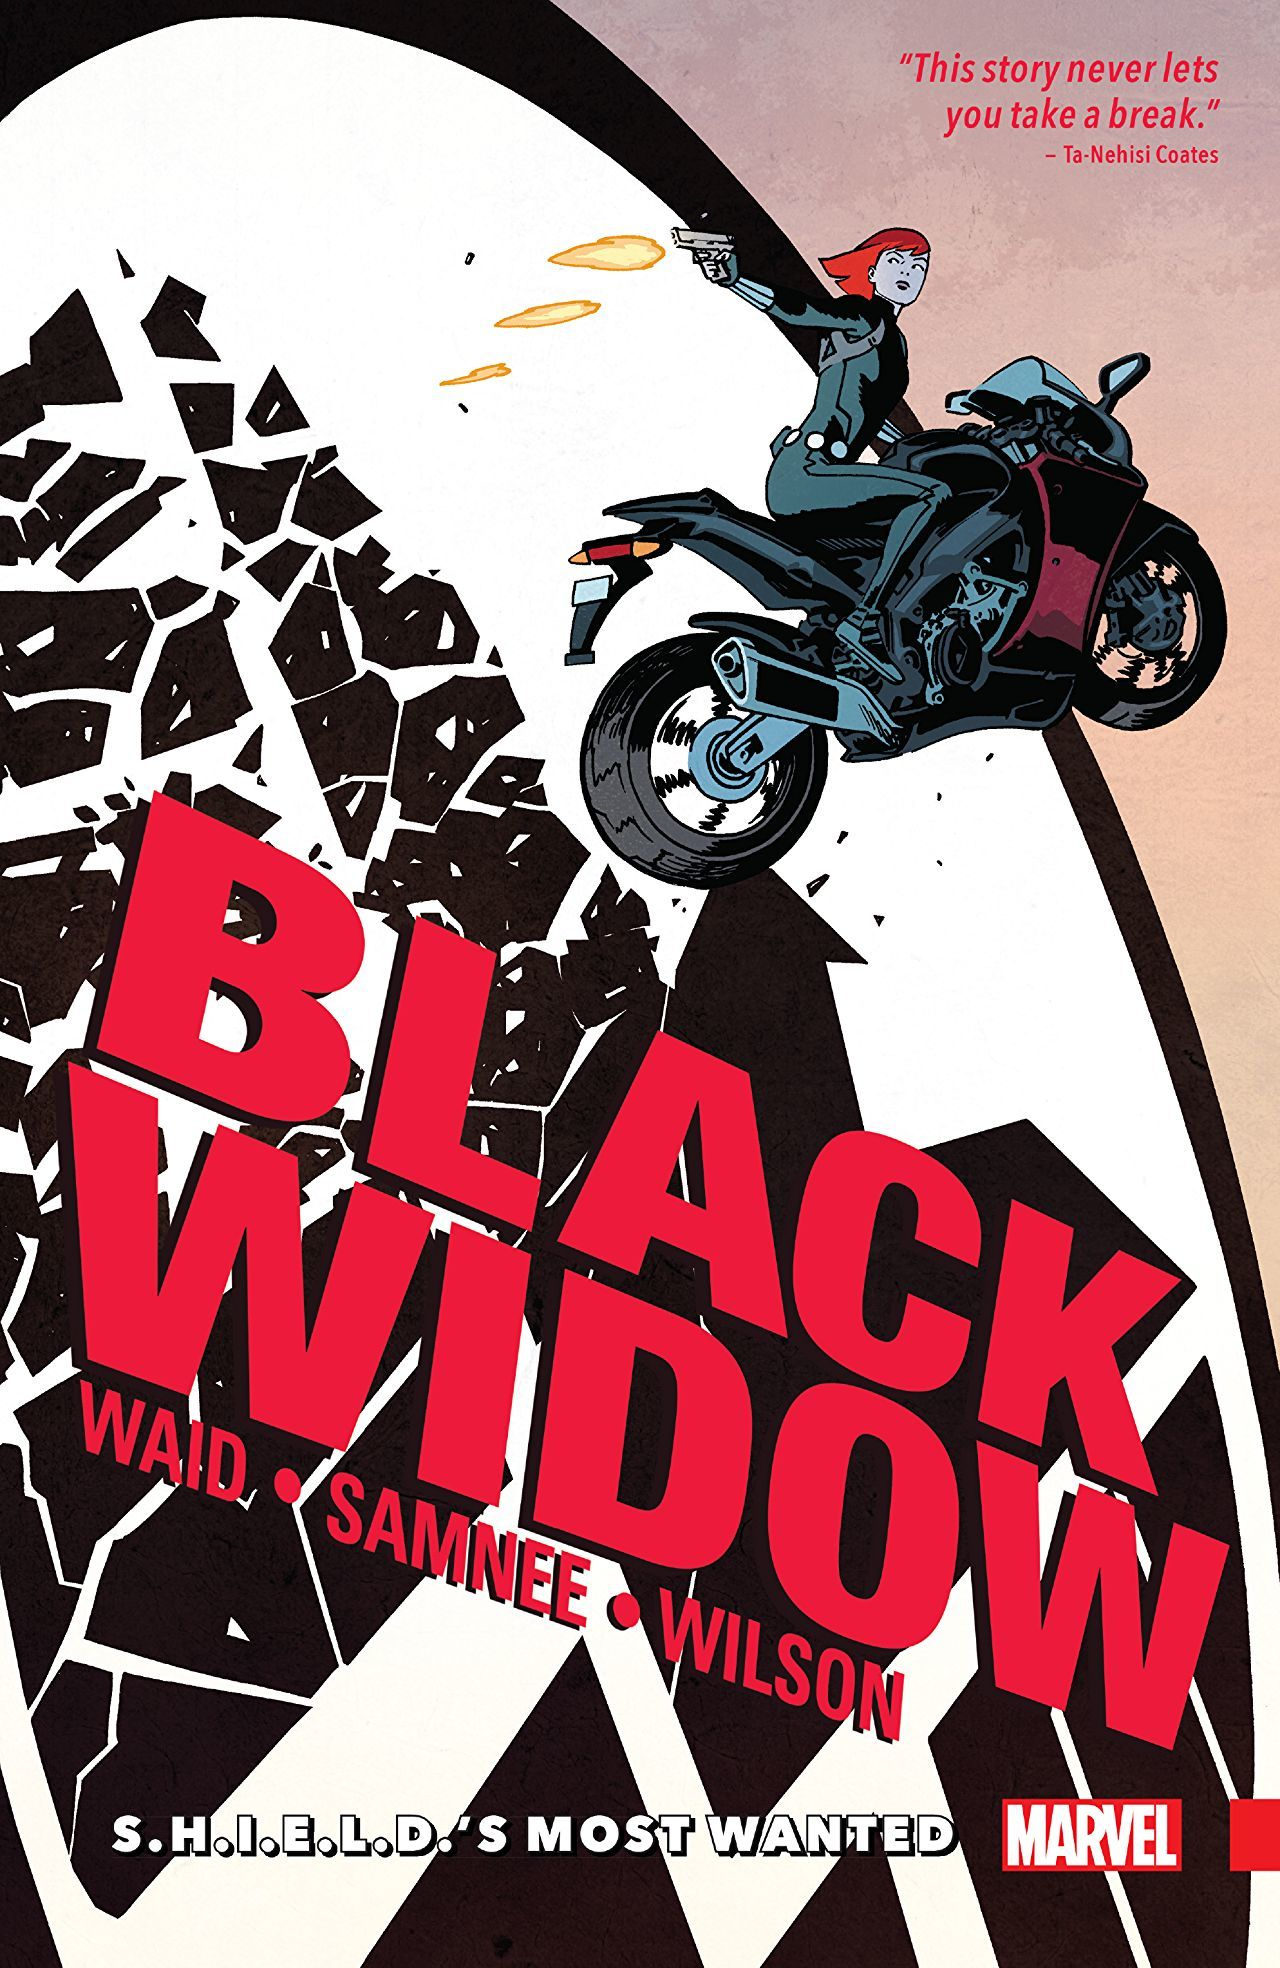 Black Widow, Volume 1: S.H.I.E.L.D.'s Most Wanted